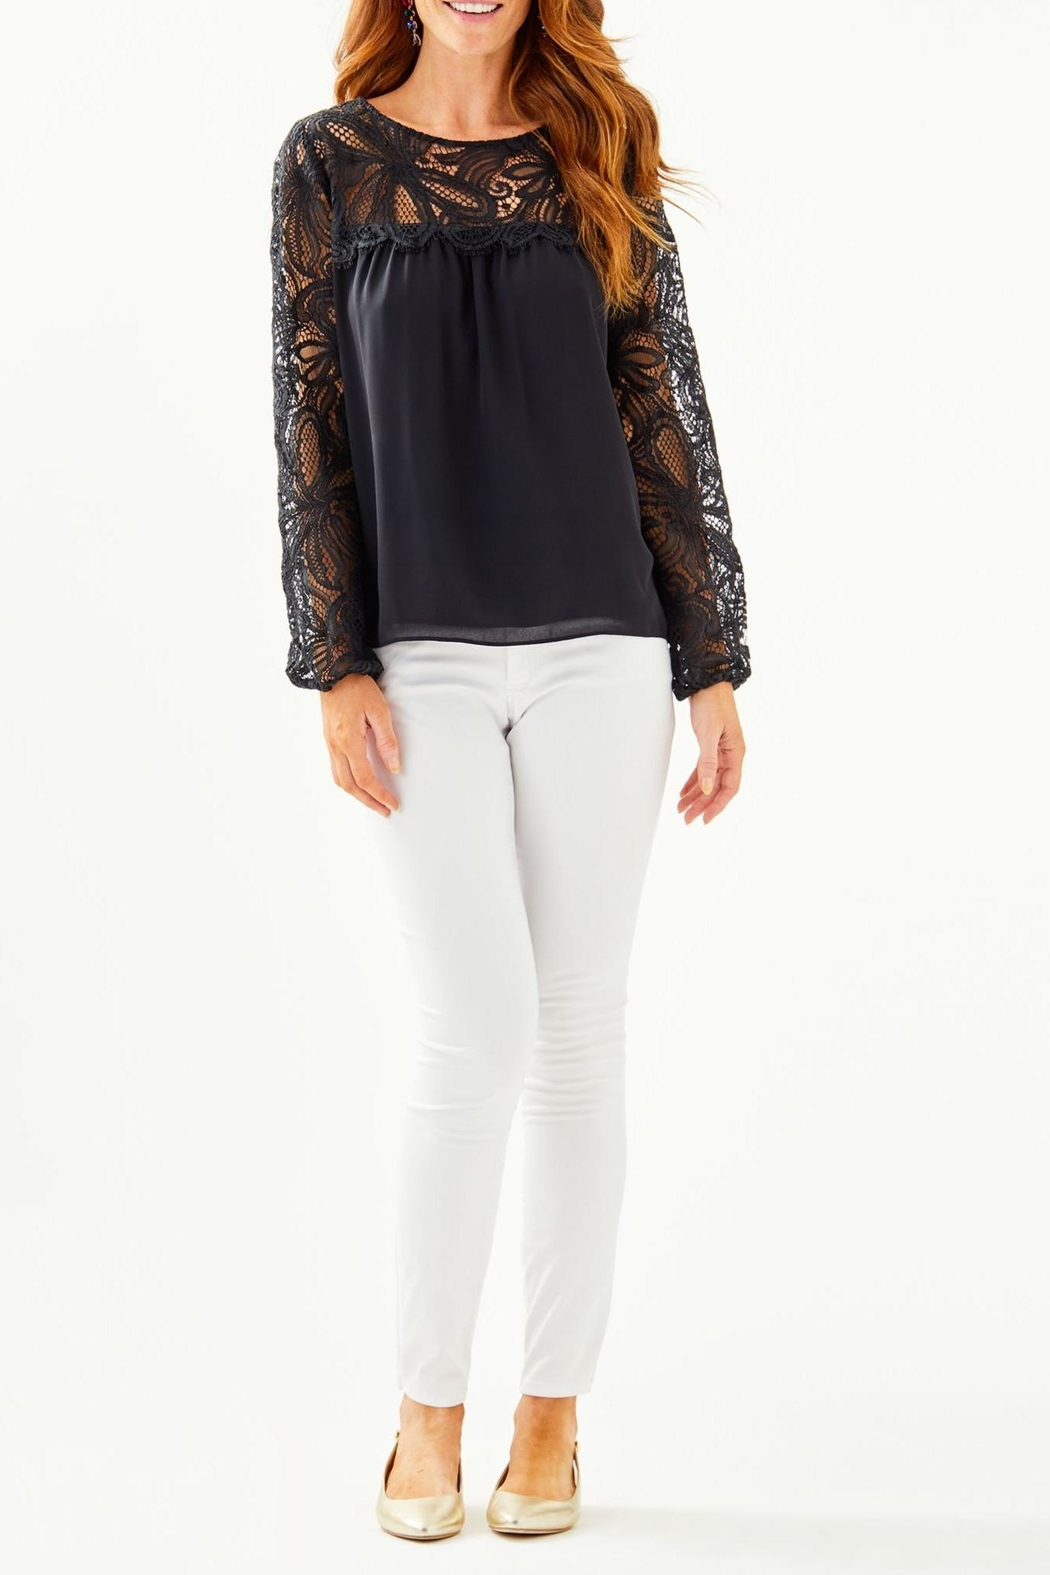 Lilly Pulitzer Keegan Lace Top - Side Cropped Image